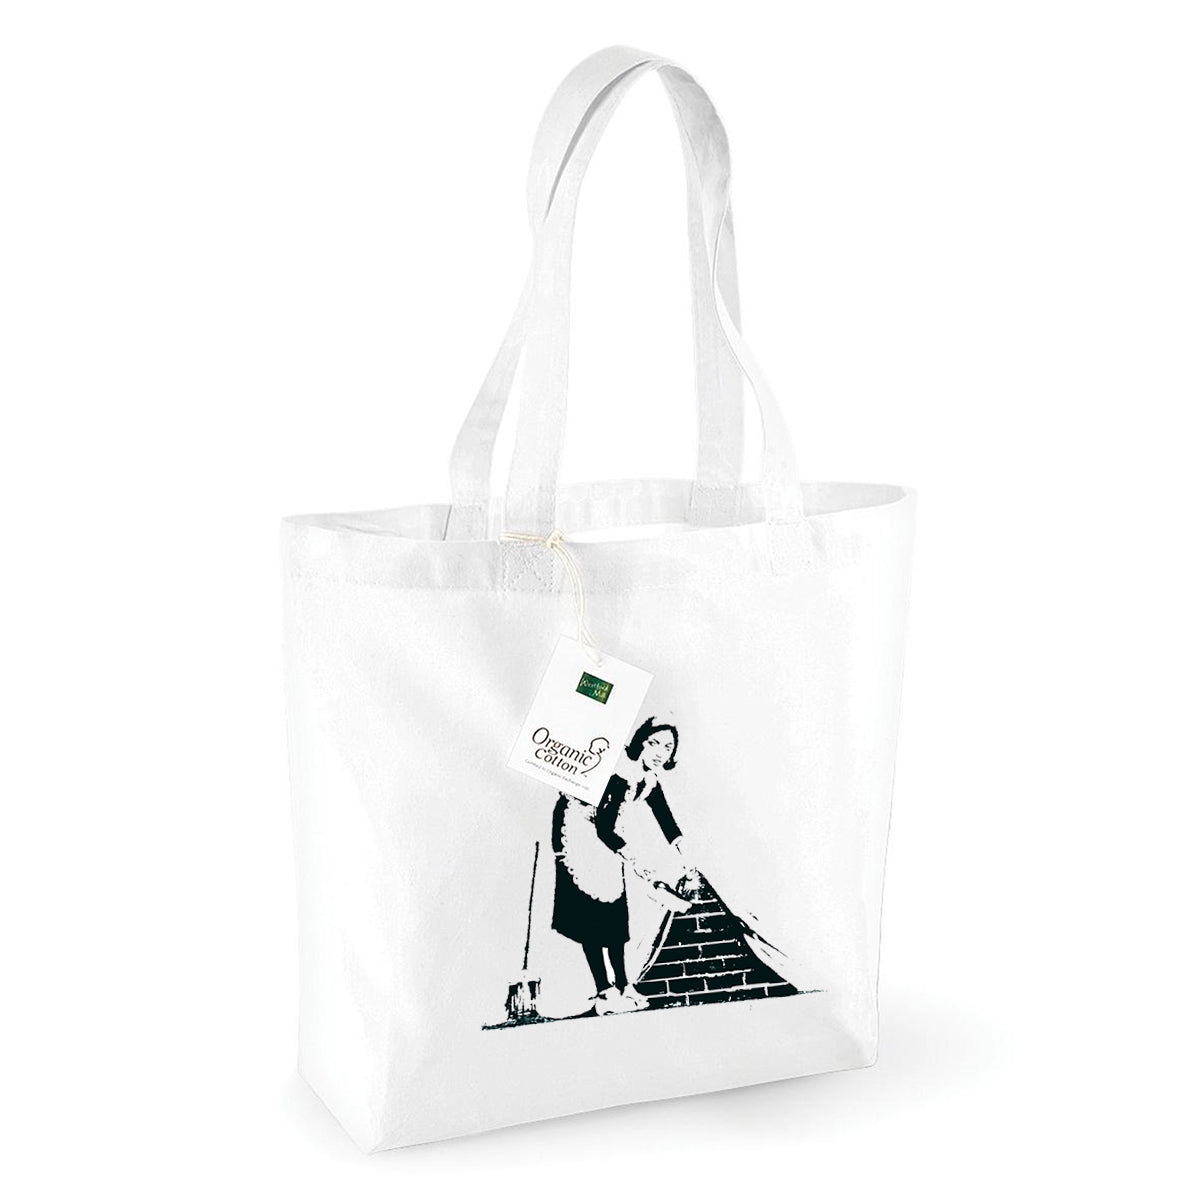 Maid In London Organic Shopping Bag